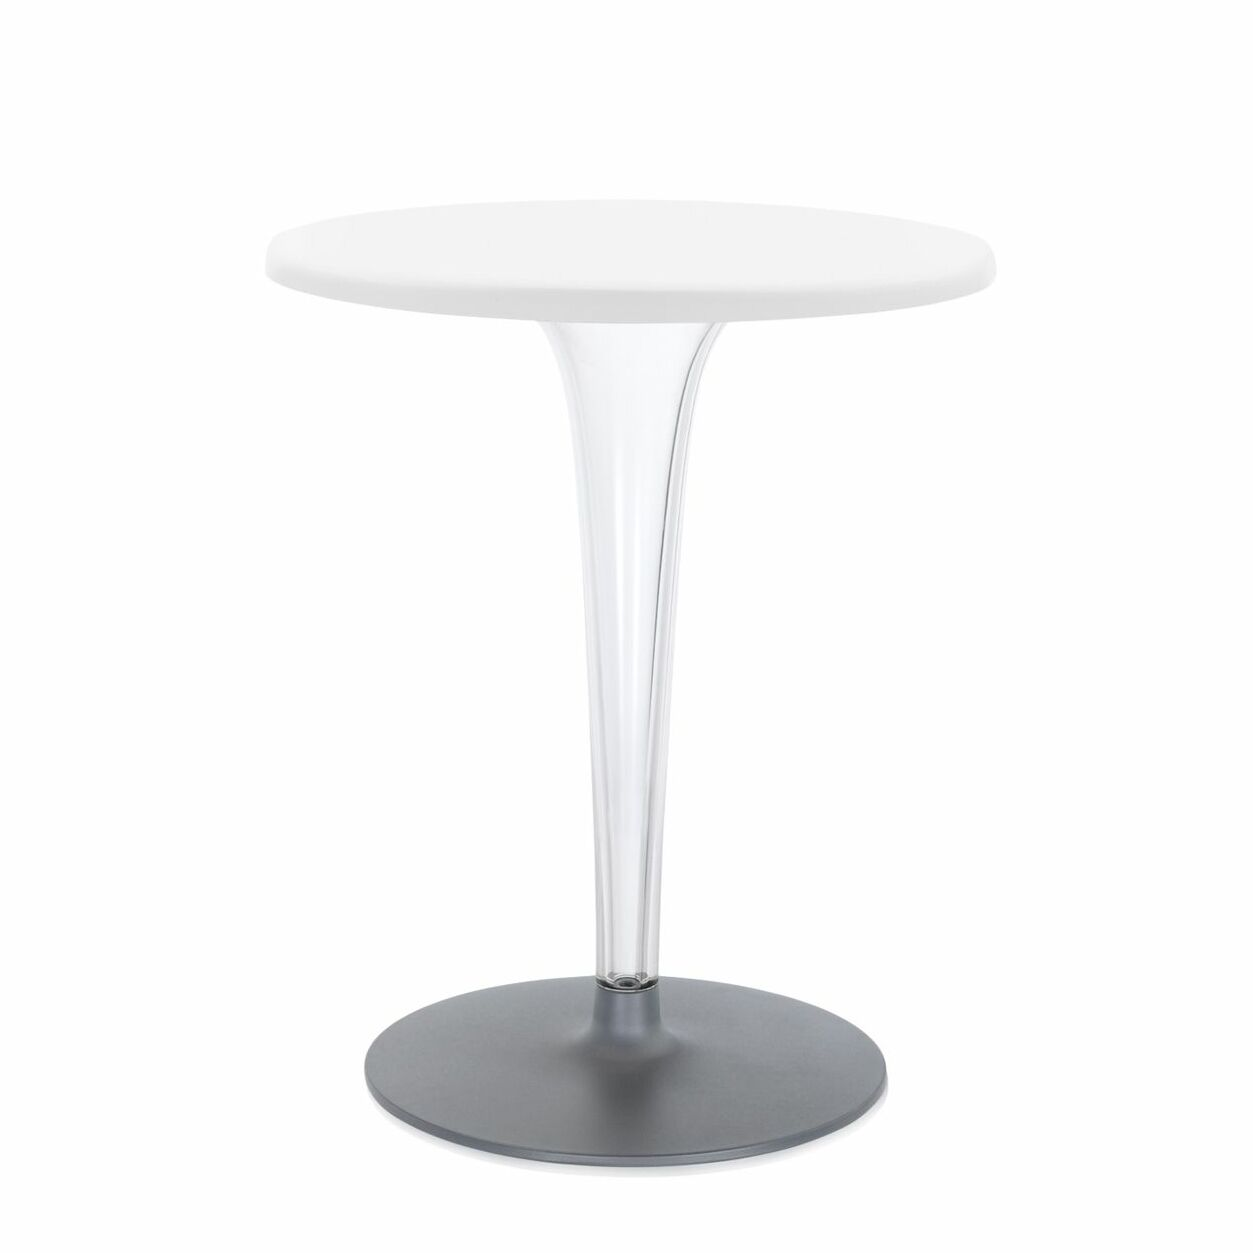 Top Top Bar Table Finish: White, Design: Round Leg/Round Top